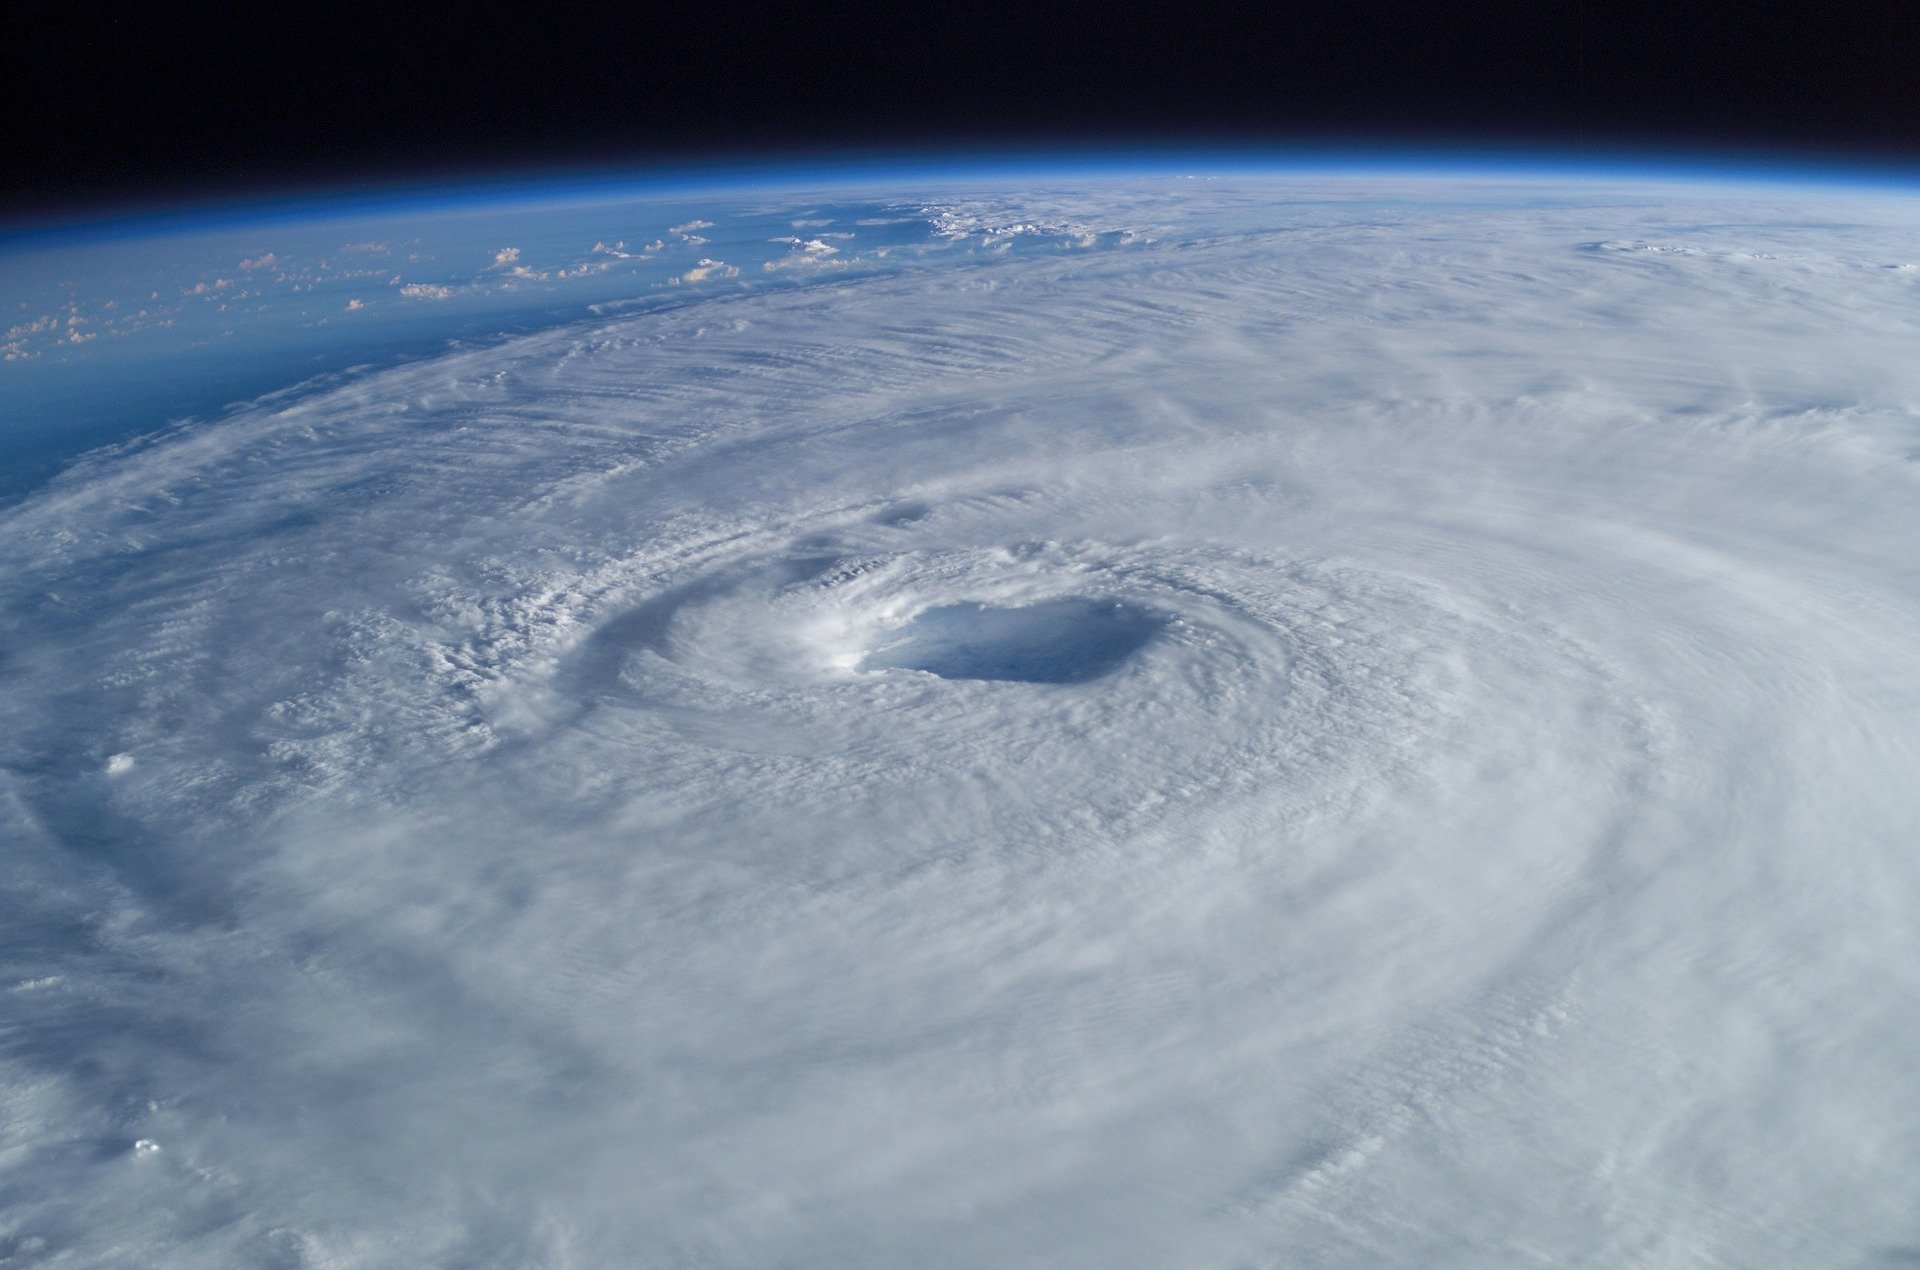 Pictured - An aerial view of a tropical cyclone | Source: Pixabay